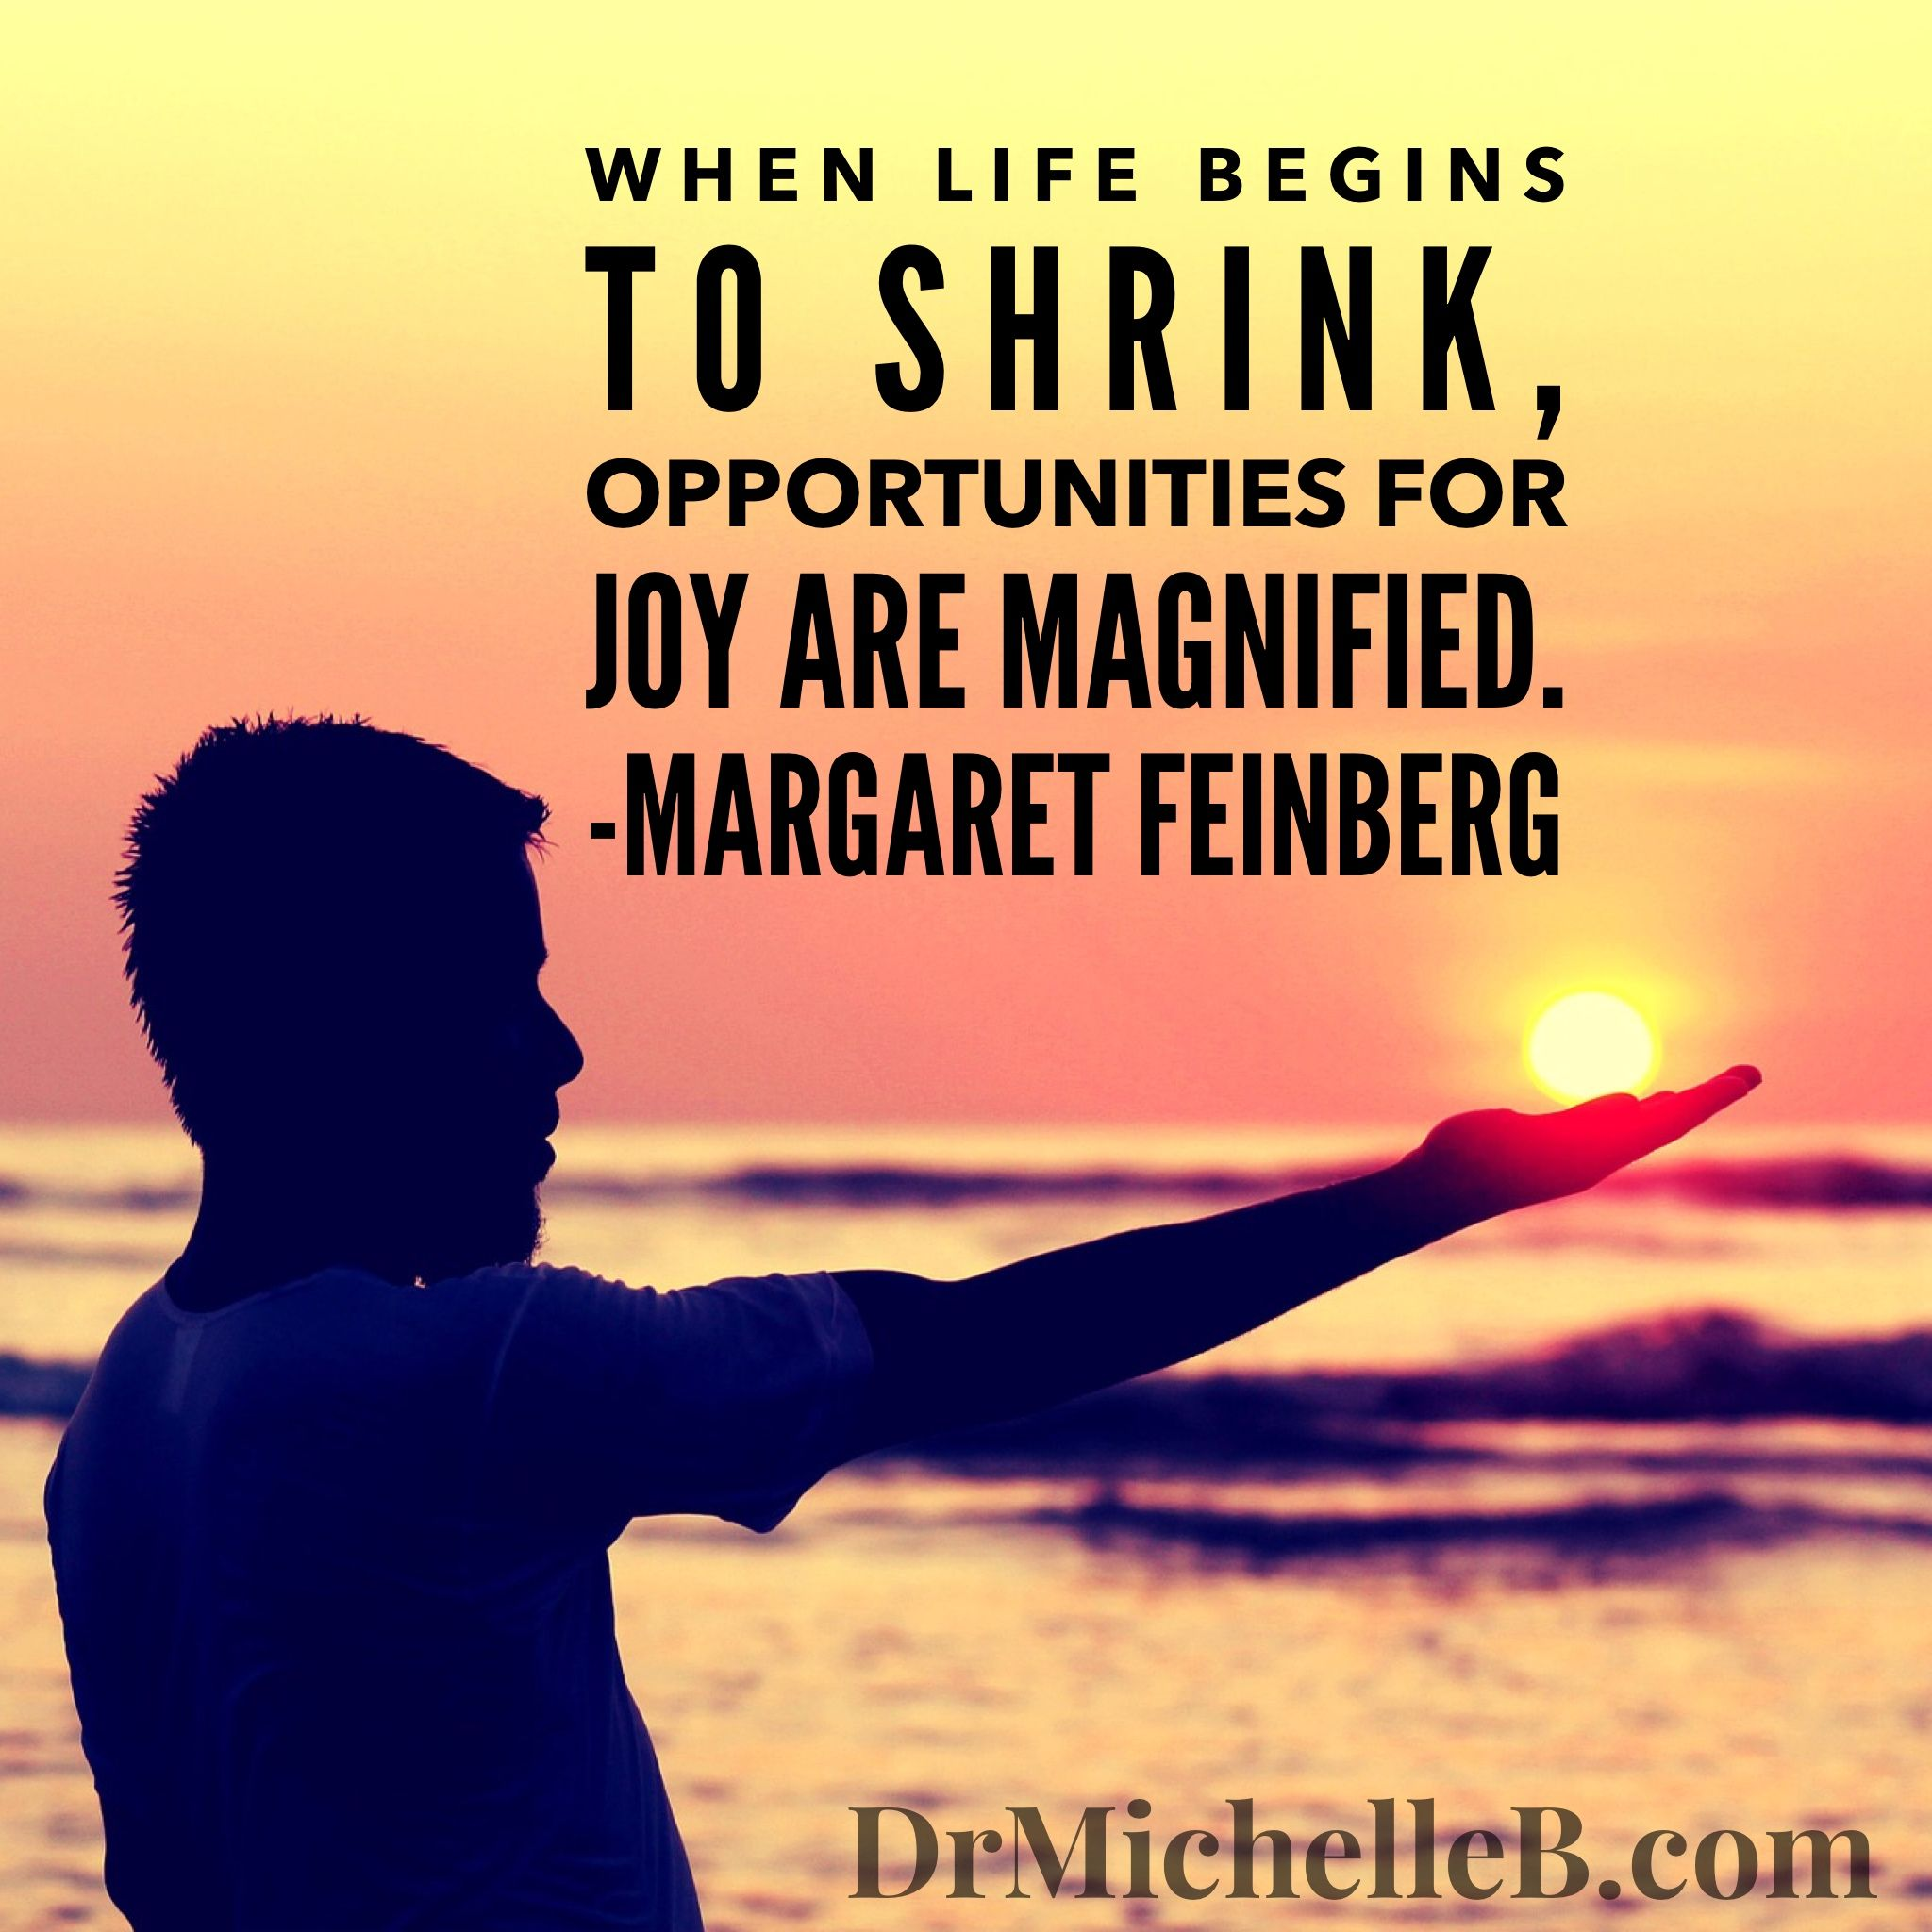 Christian Inspirational Quotes Life When Life Begins To Shrink Opportunities For Joy Are Magnified